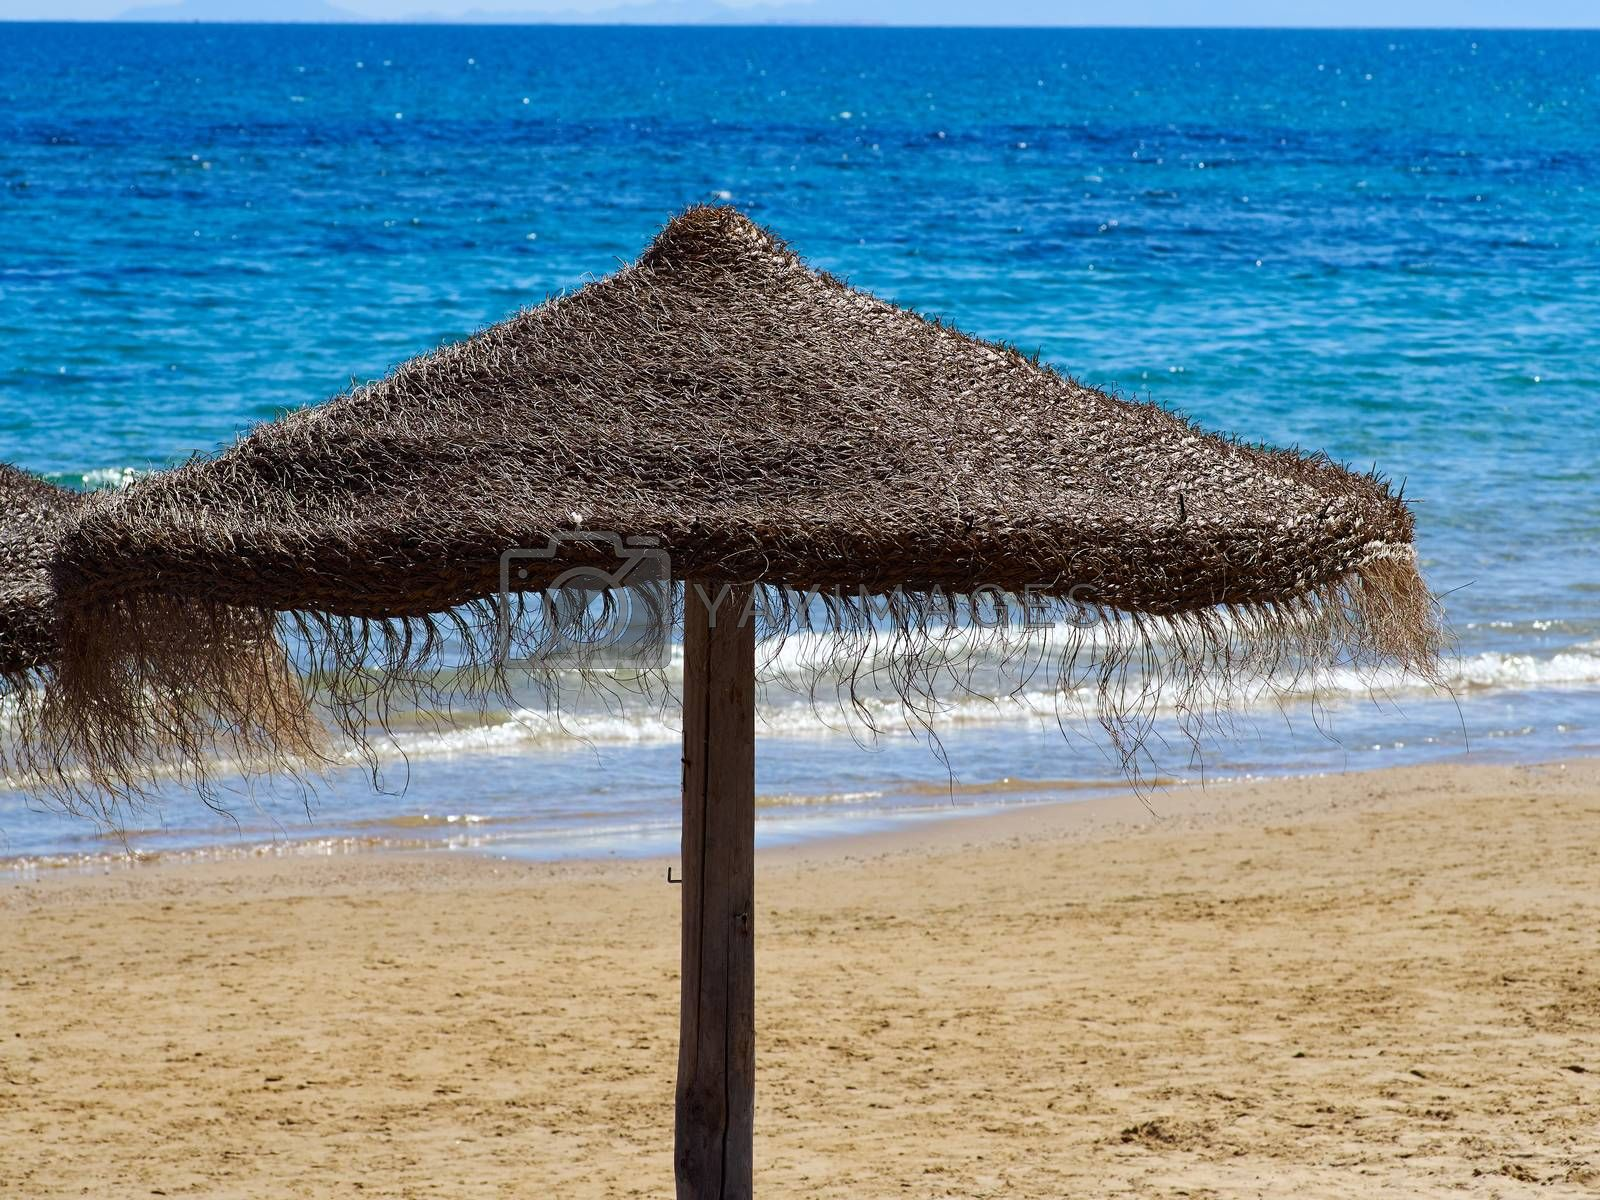 Sunshade on a Tropical  exotic beach great summer vacation image